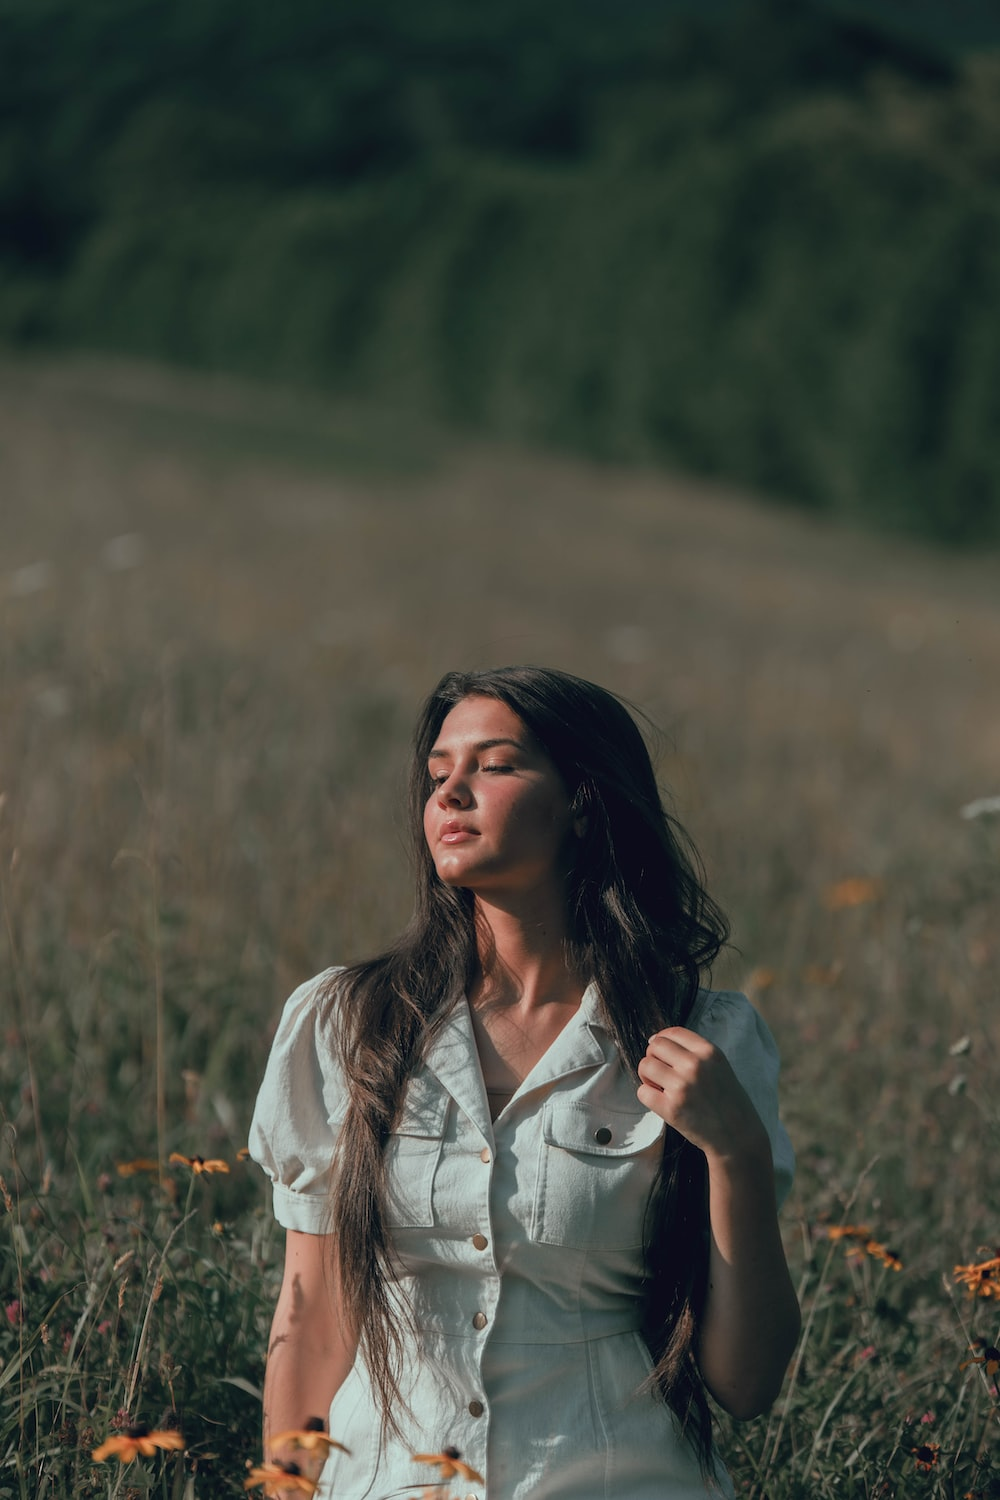 woman in white button up shirt standing on brown grass field during daytime